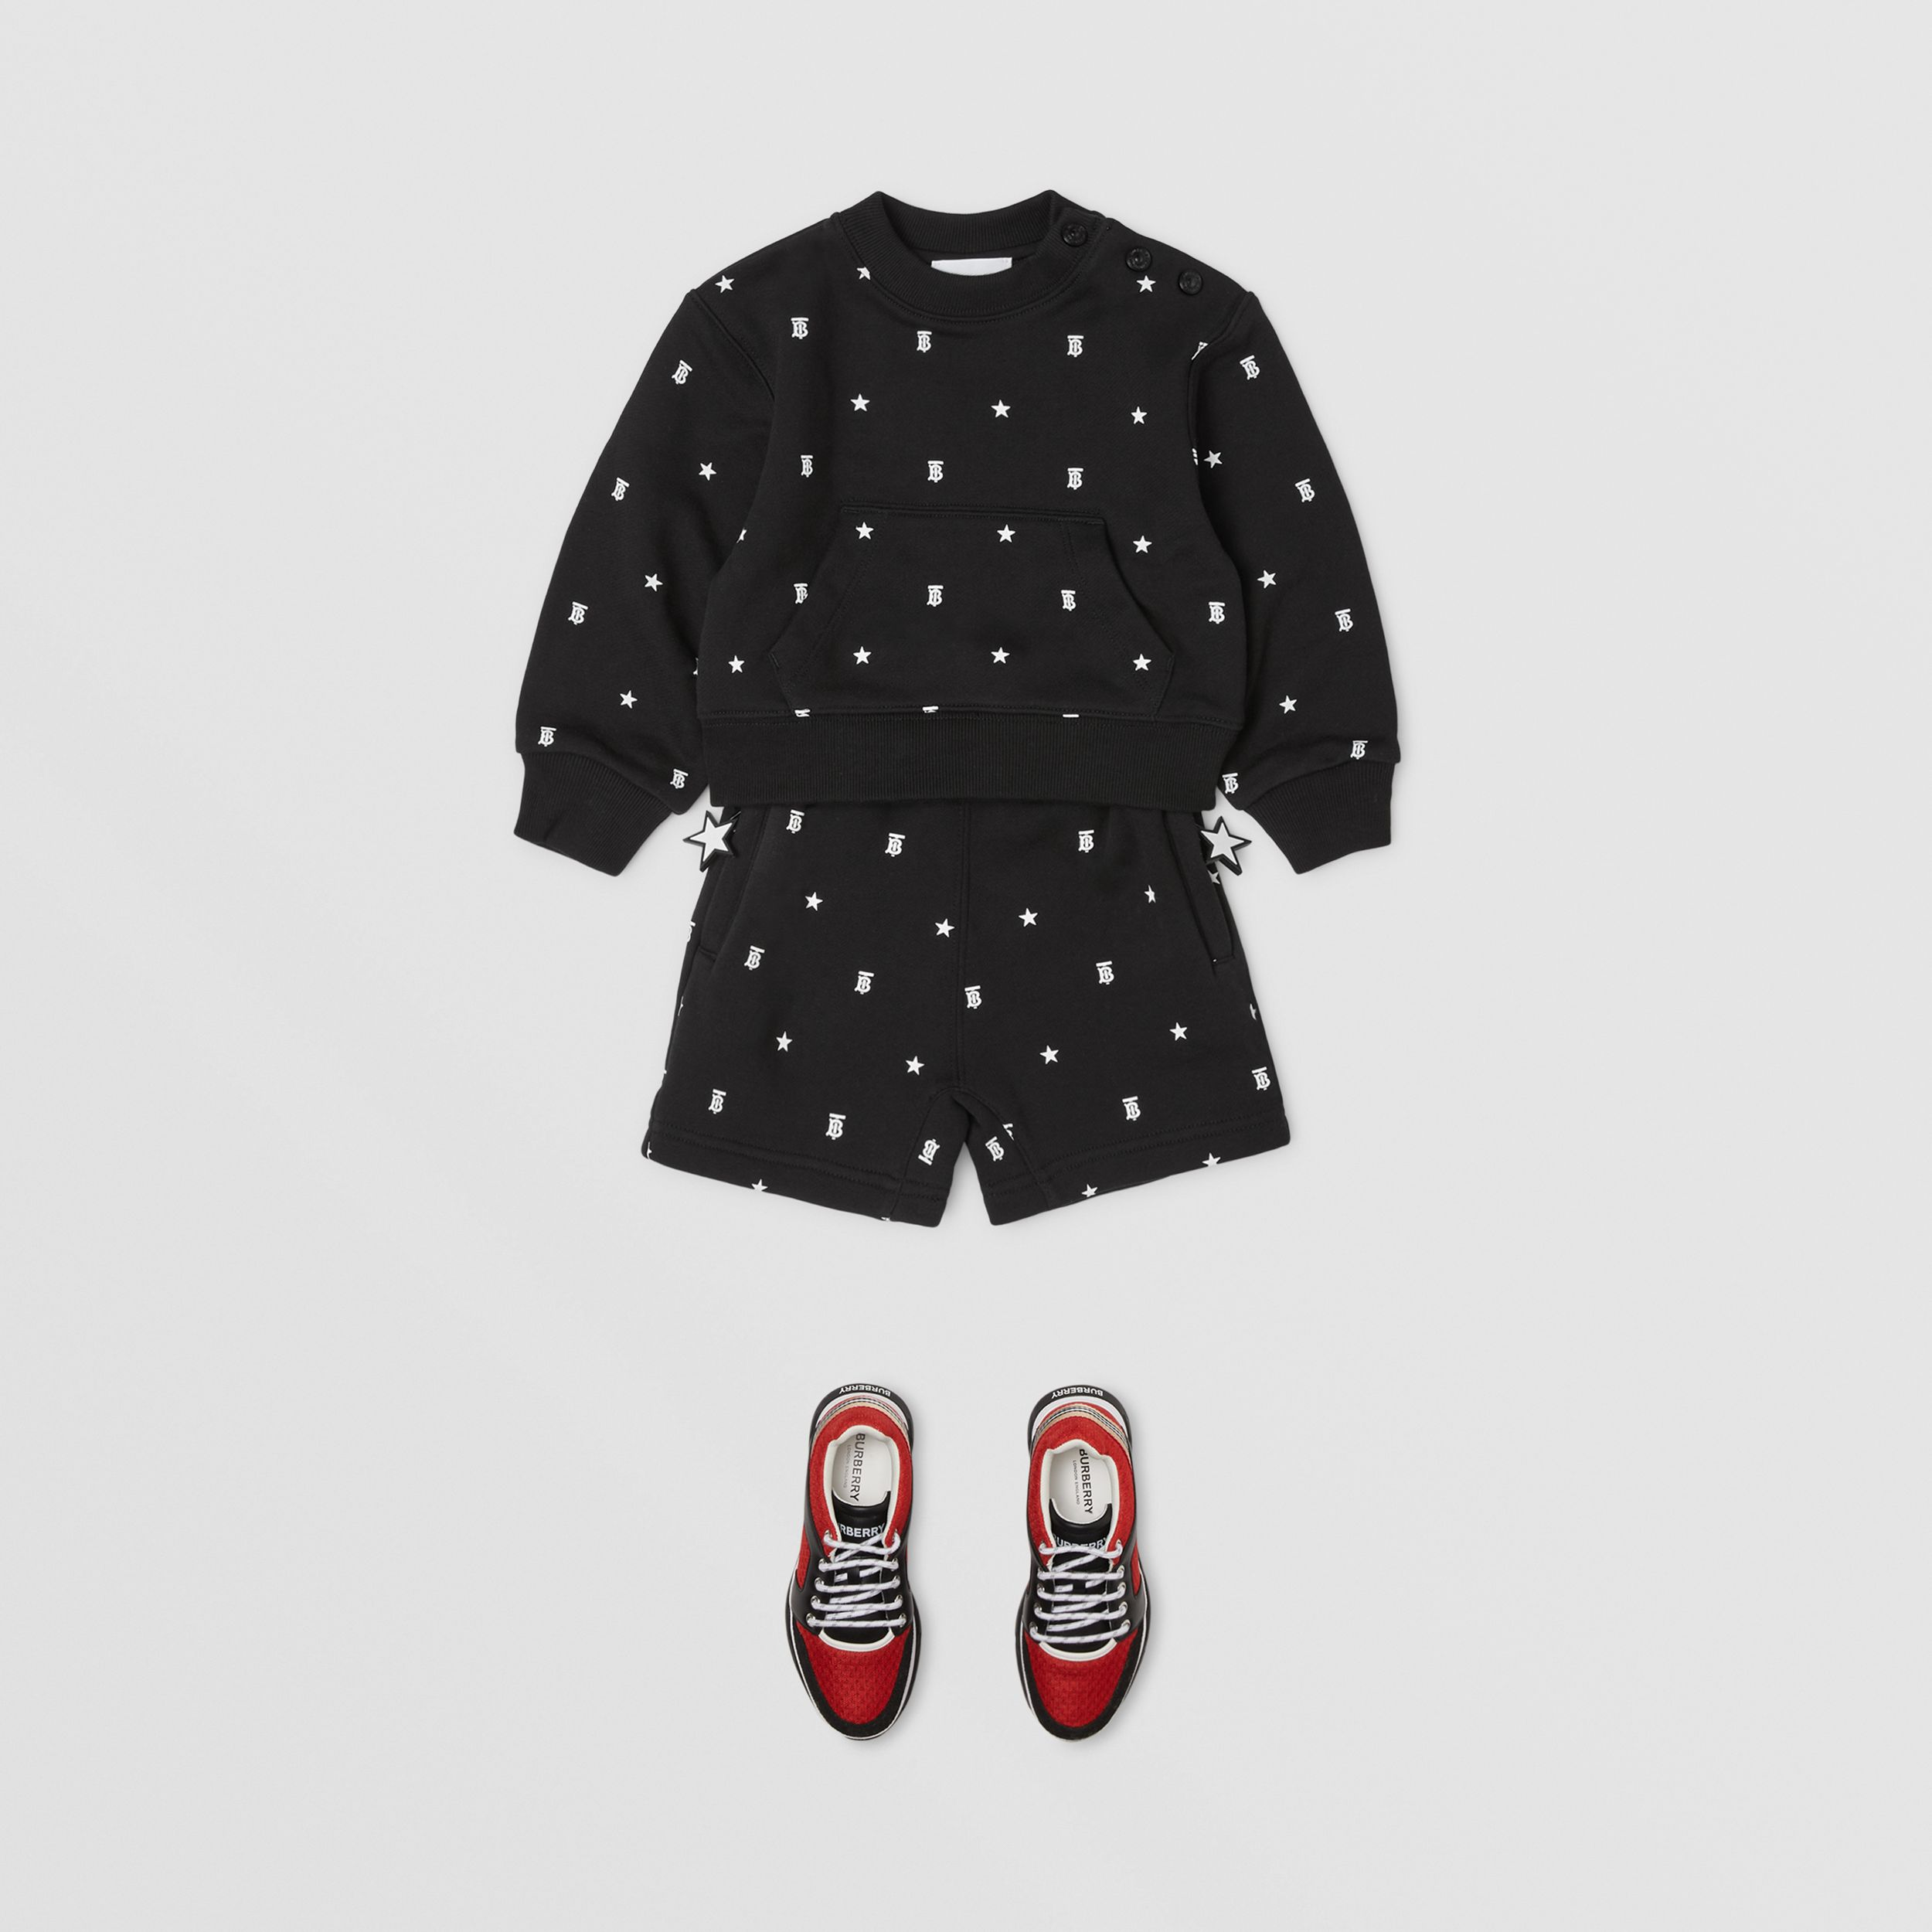 Star and Monogram Motif Cotton Sweatshirt in Black - Children | Burberry - 3